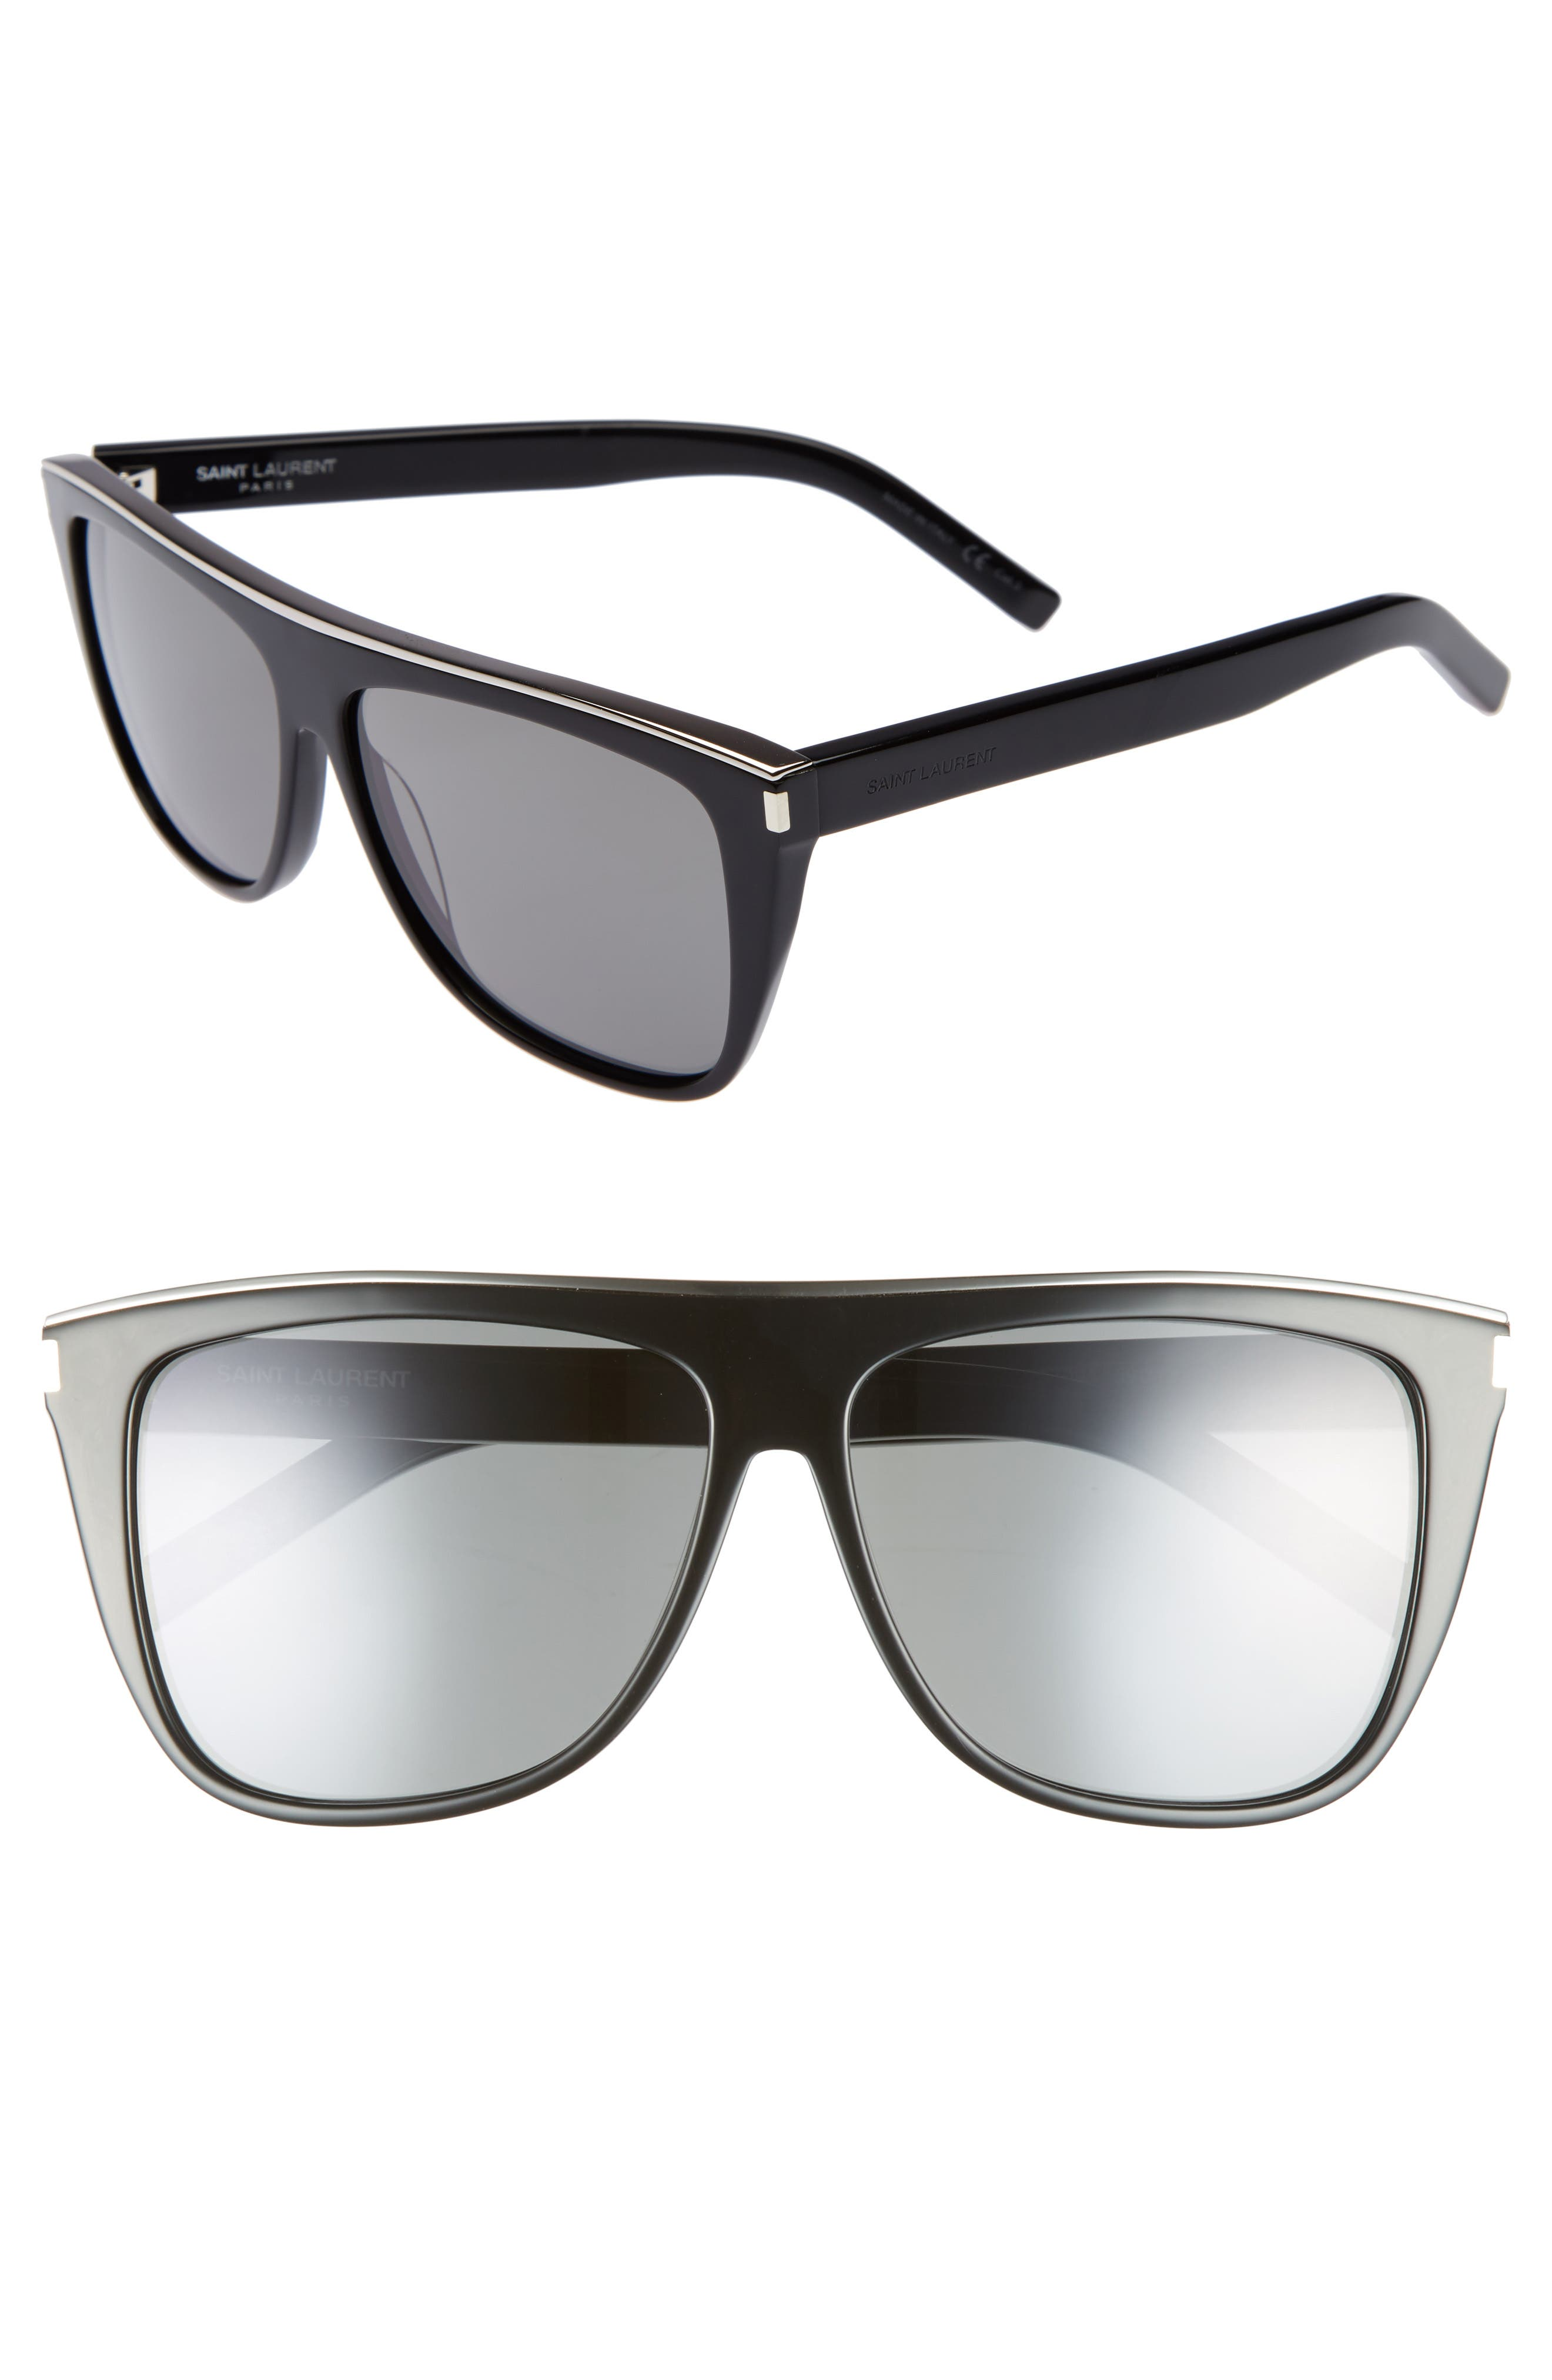 Saint Laurent Combi 5m Flat Top Sunglasses - Black